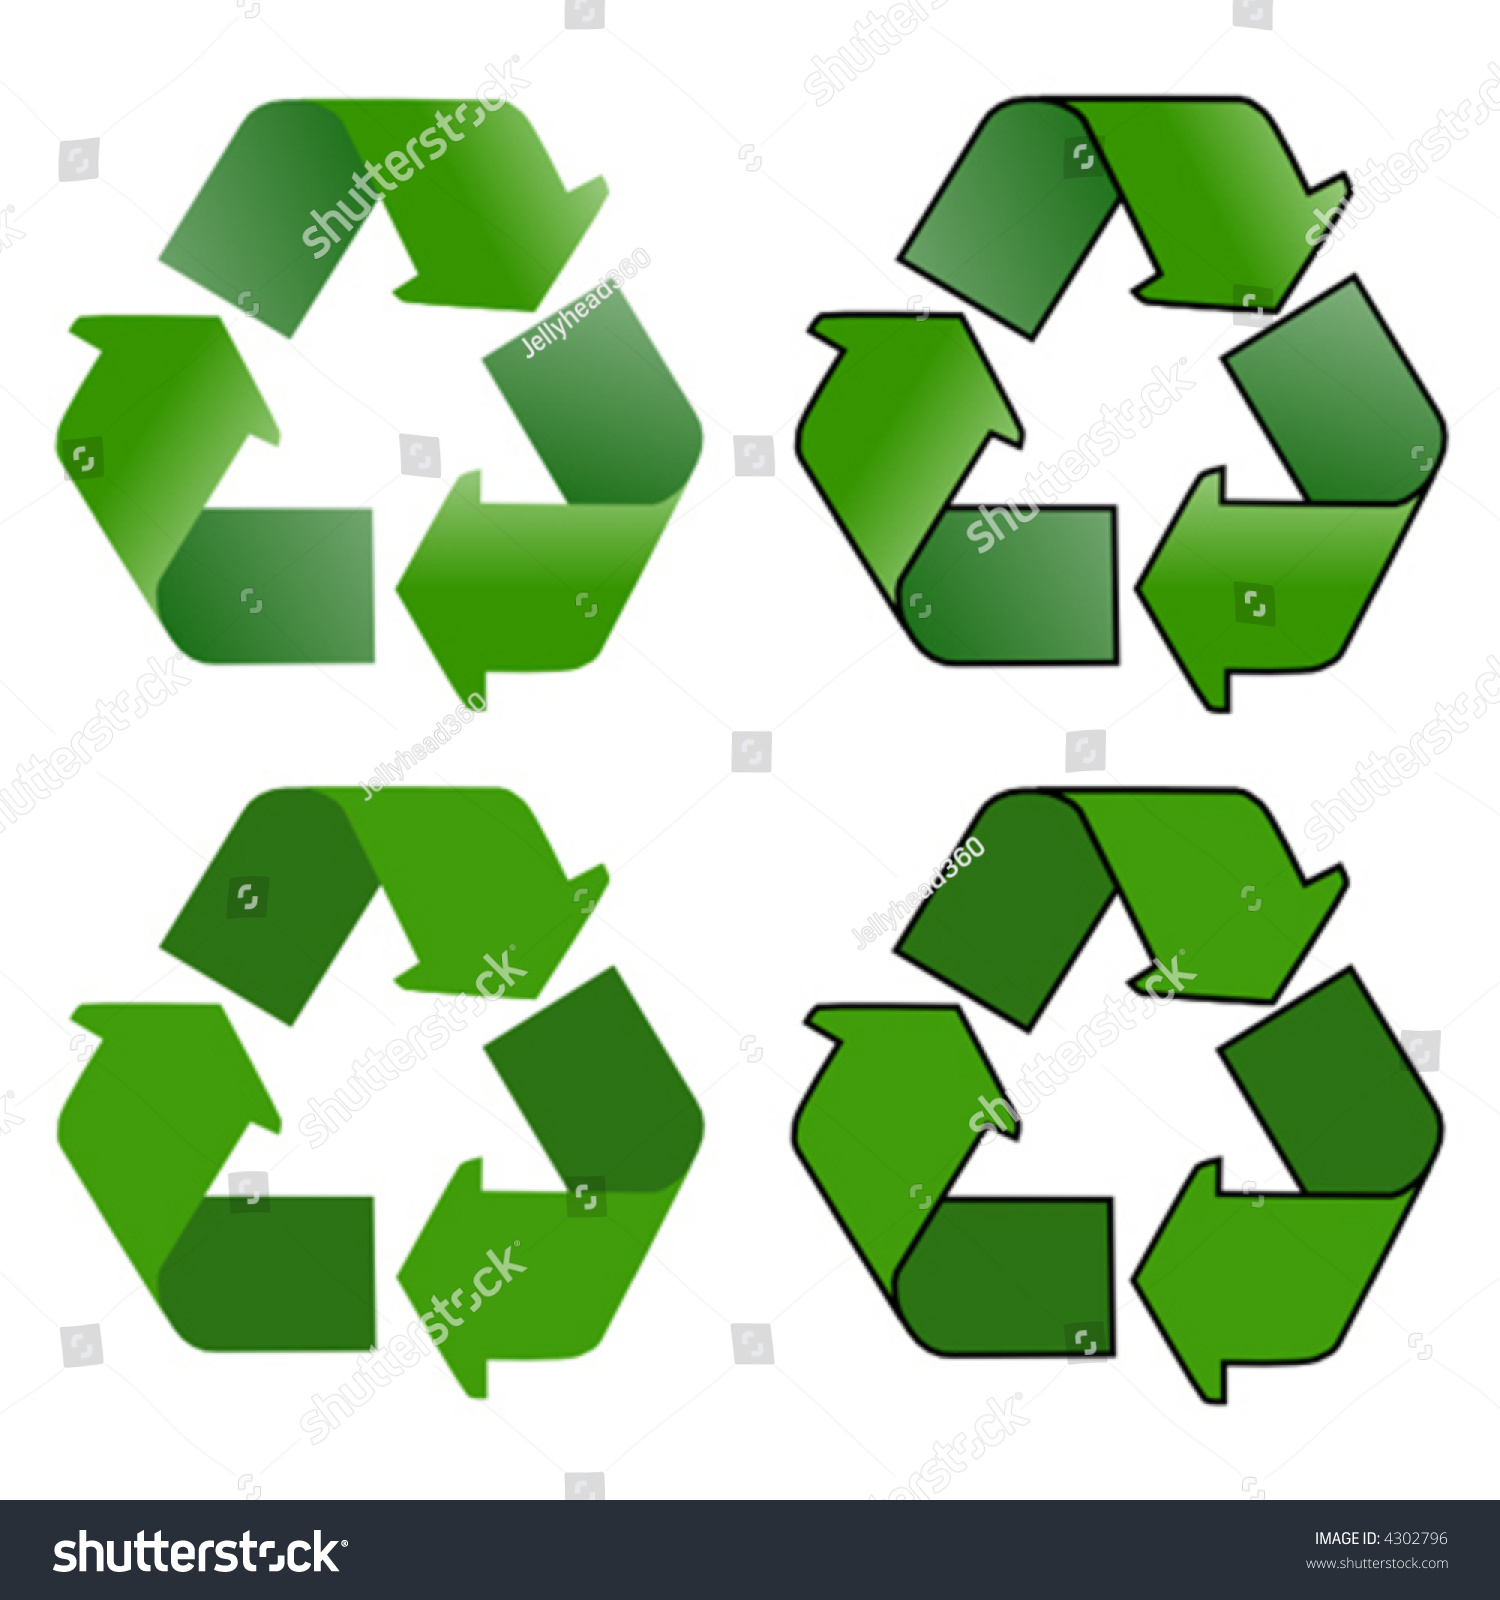 Vector drawing recycling symbol 4 slightly stock vector 4302796 a vector drawing of a recycling symbol 4 slightly different versions biocorpaavc Choice Image